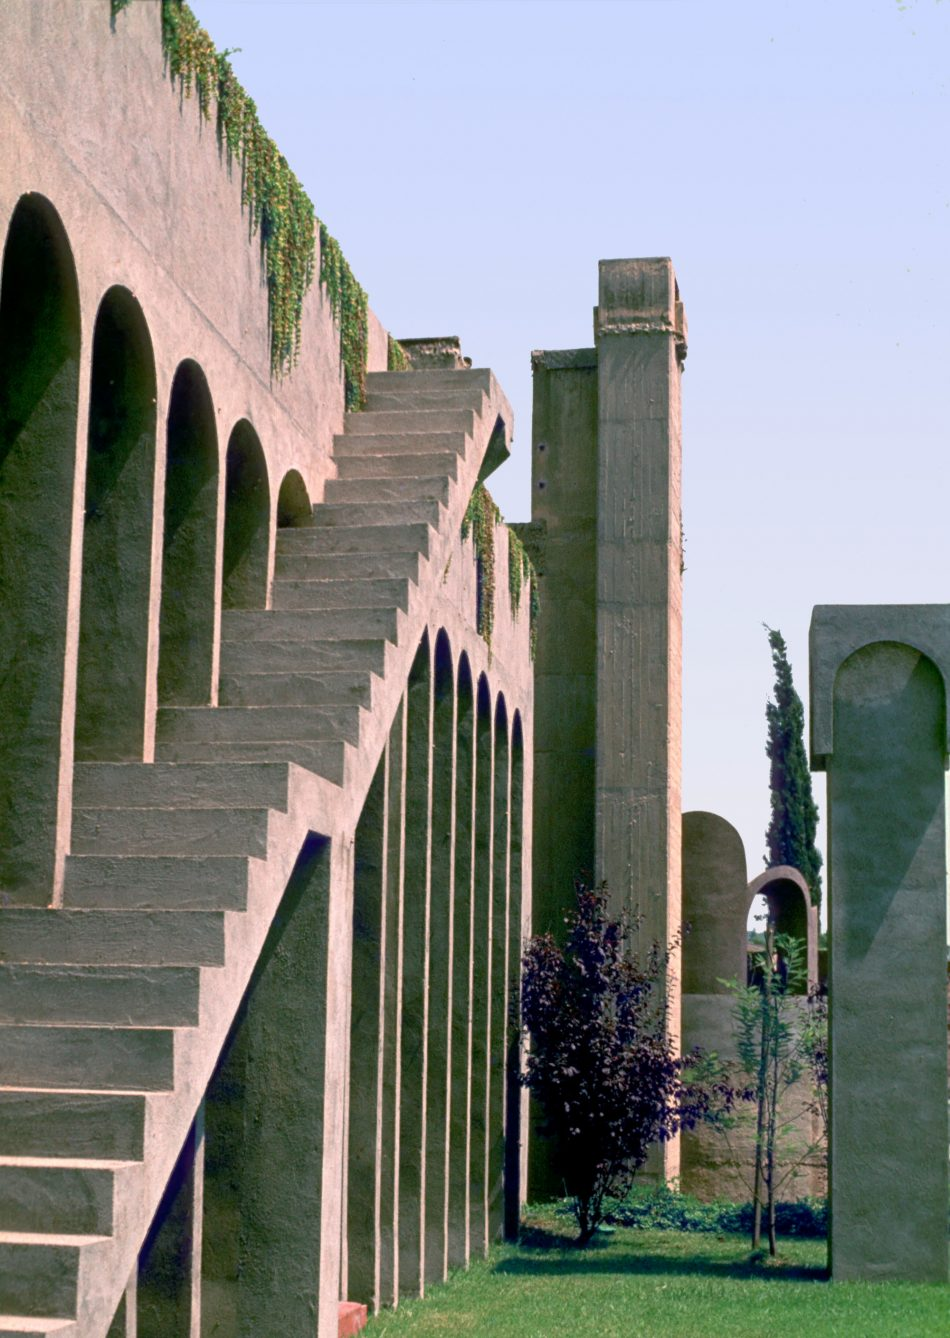 House Of The Day: The Factory By Ricardo Bofill